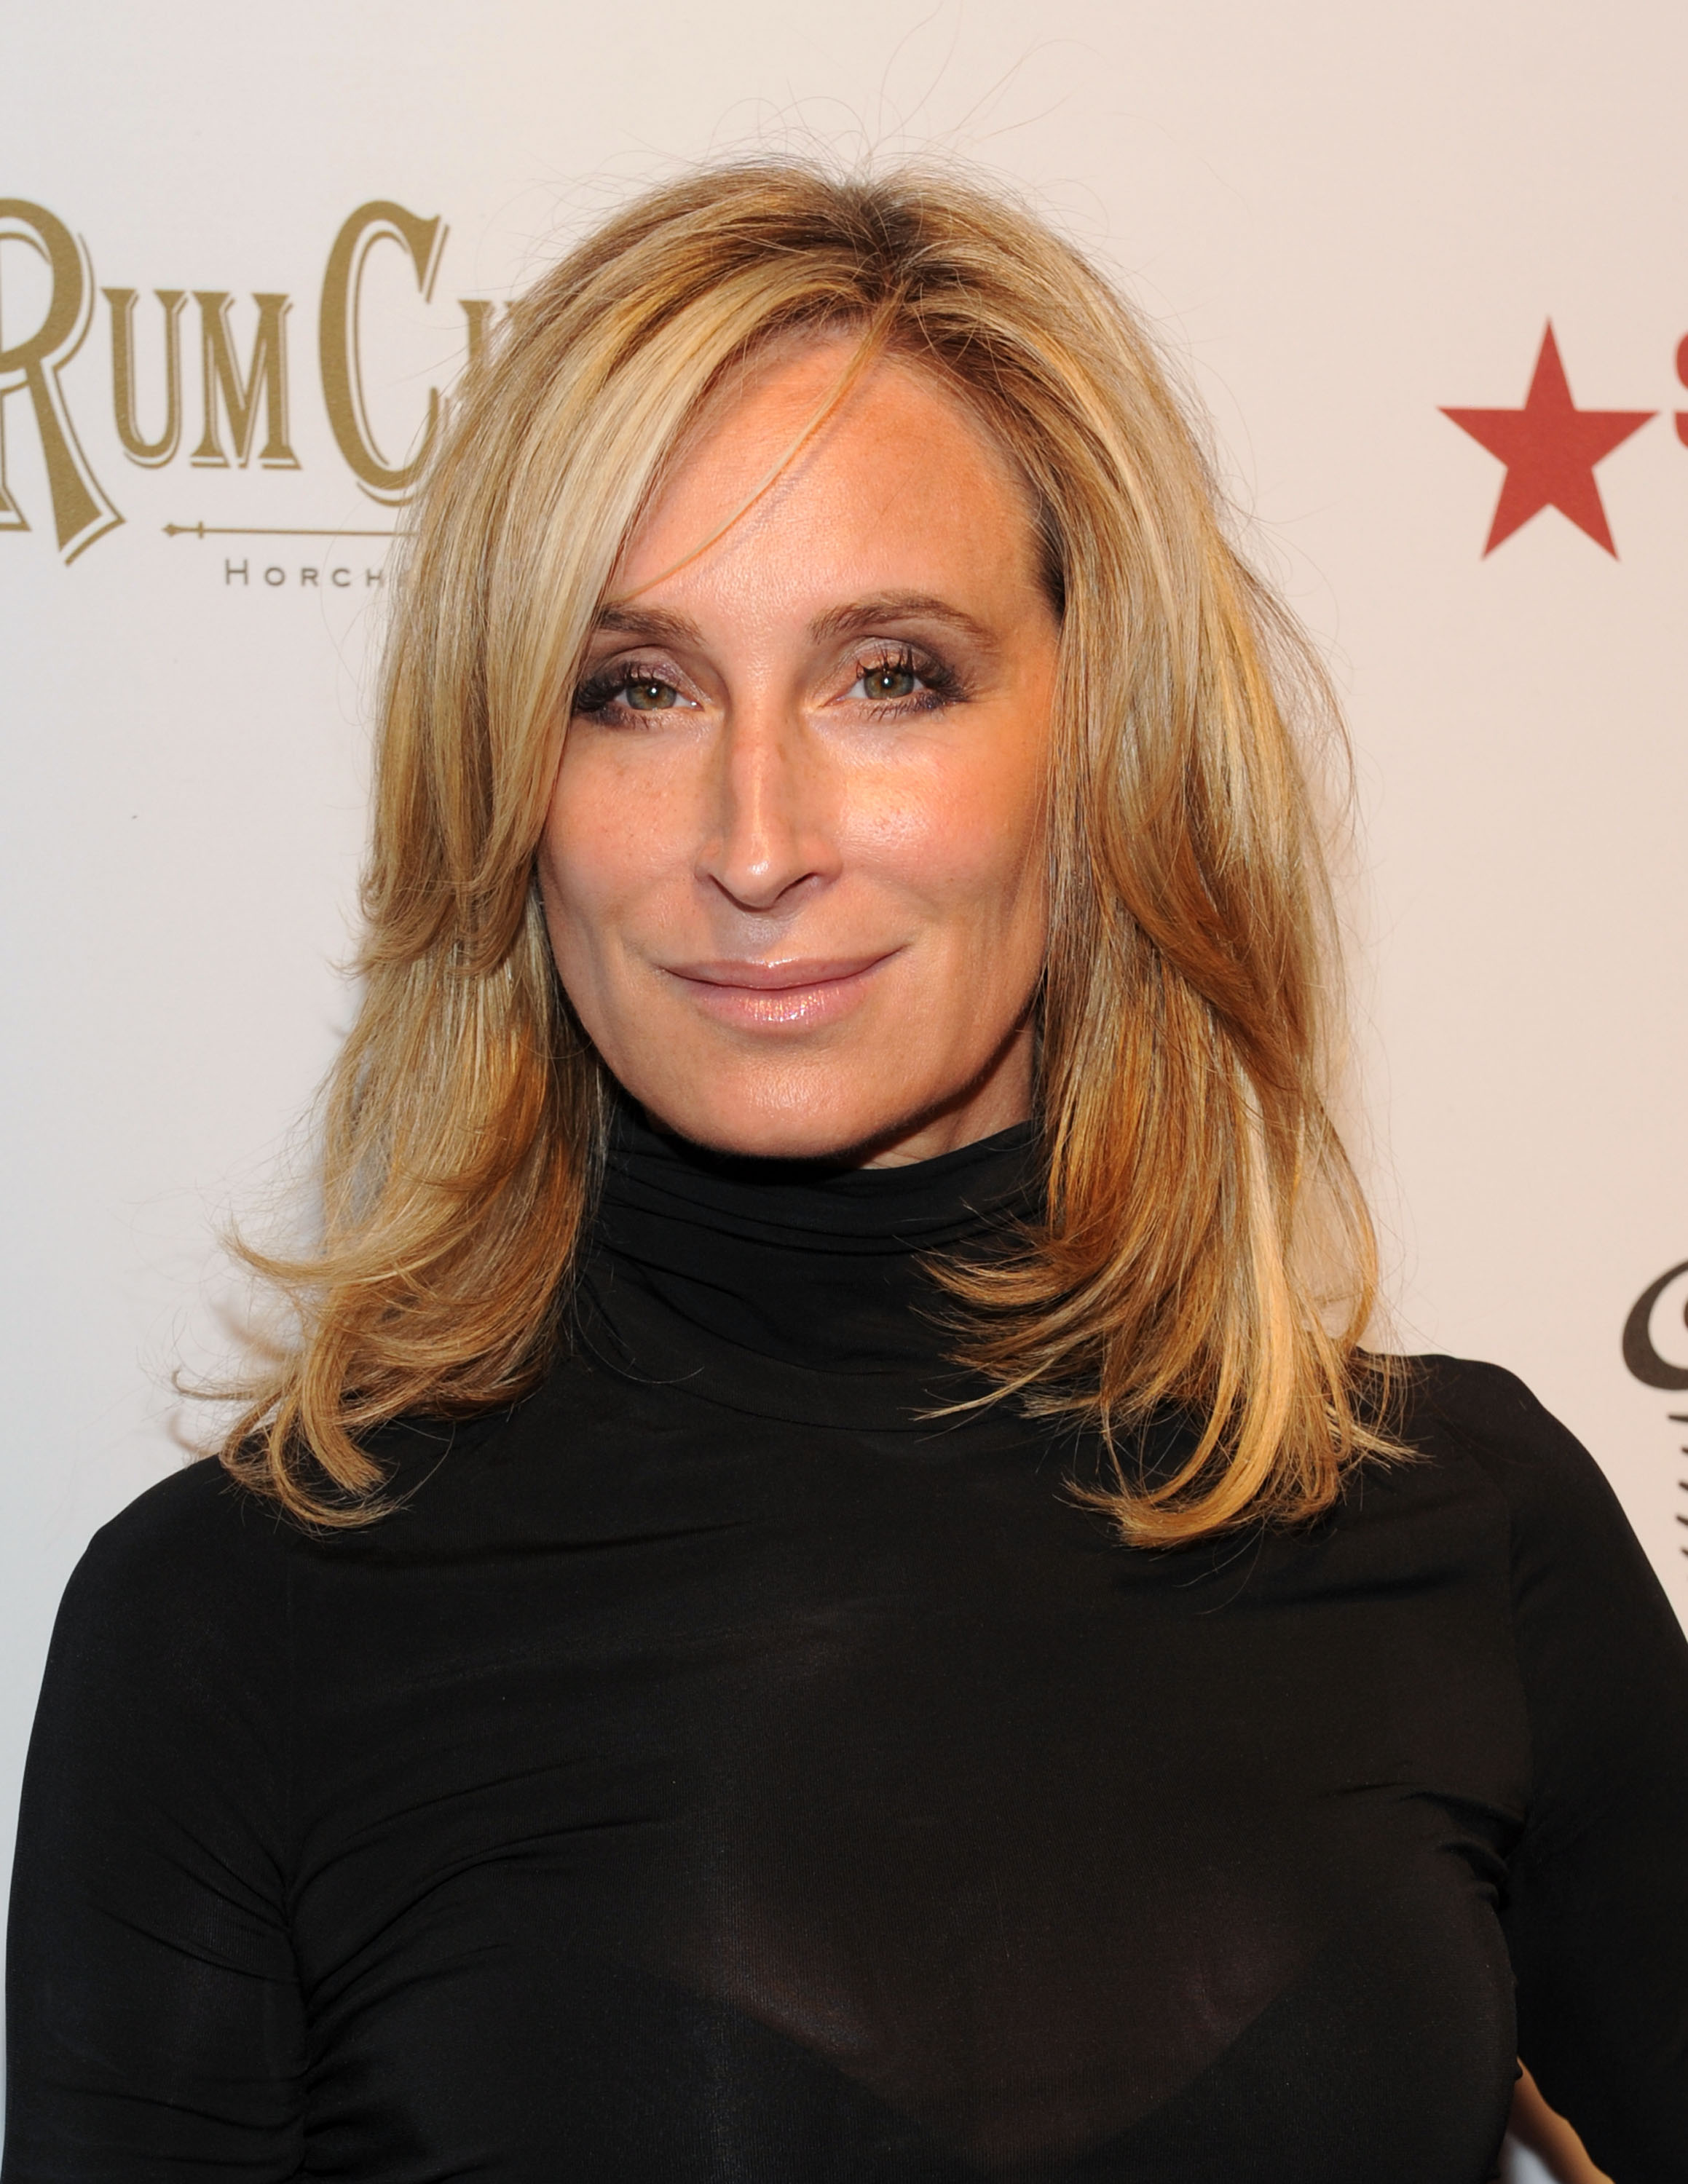 Images Sonja Morgan nude (85 photo), Sexy, Cleavage, Instagram, braless 2019